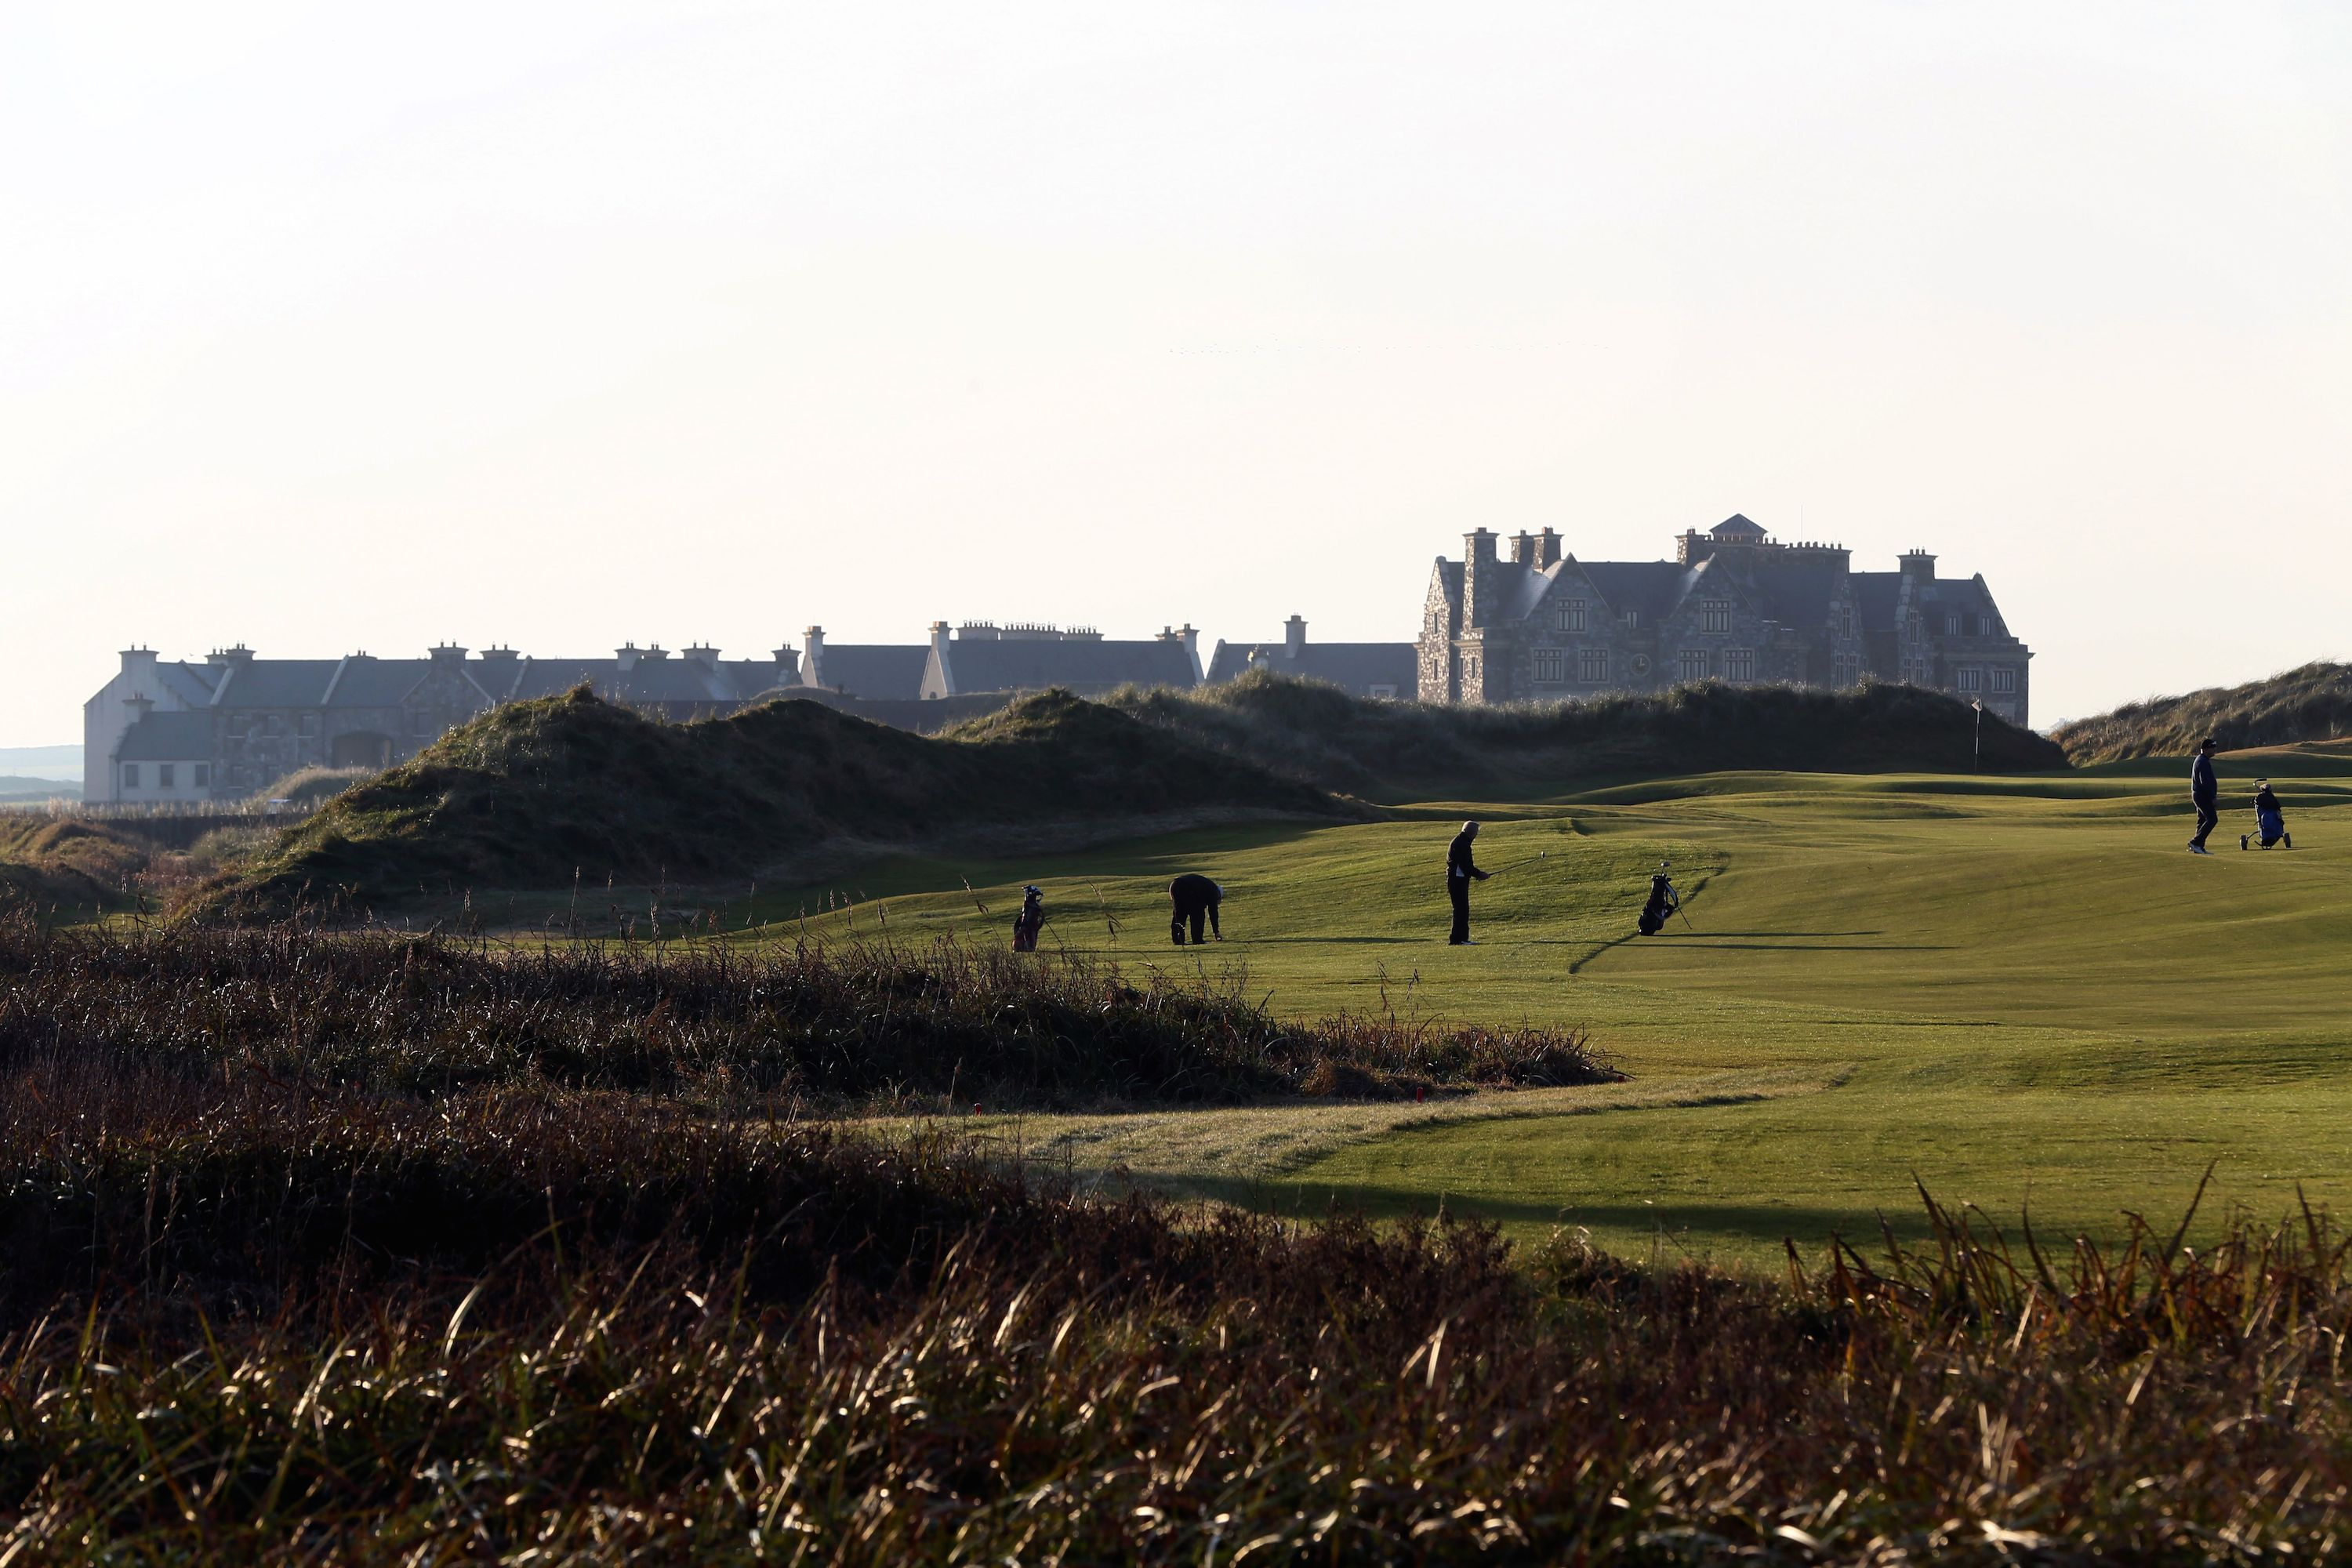 This 2002 Greg Norman design was sculpted from massive sandhills at the ocean's edge. Always a fan favorite, despite some design hiccups caused by environmental issues, Doonbeg's flaws were fixed by architect Martin Hawtree in 2015-'16. Greens were re-contoured or repositioned and several holes were redesigned, including a new beachside par-3 14th.